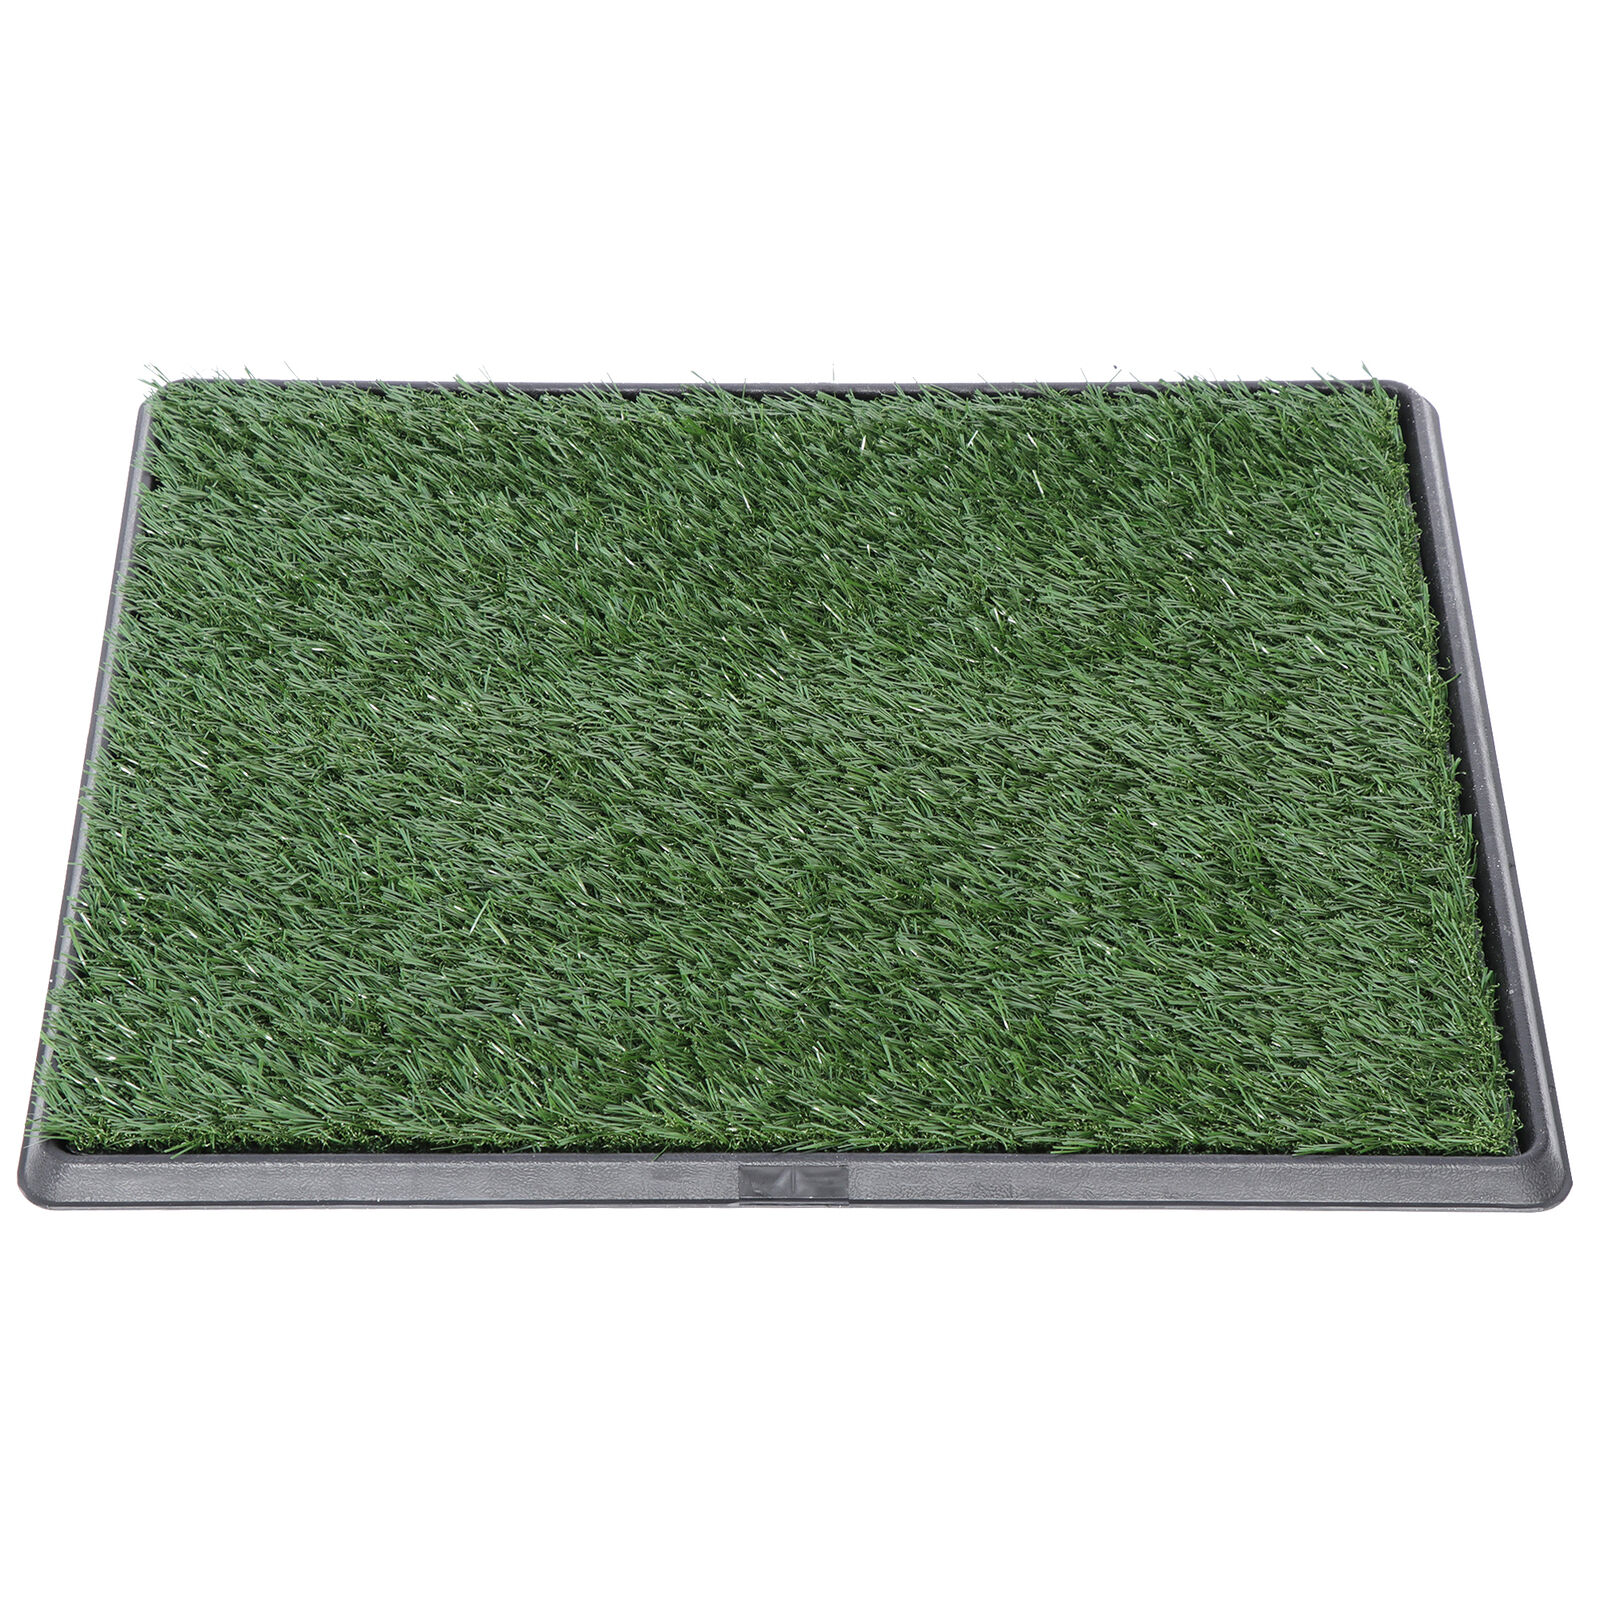 25″ Pet Potty Trainer Grass Mat Dog Puppy Training Pee Patch Pad Indoor Outdoor Artificial Grass